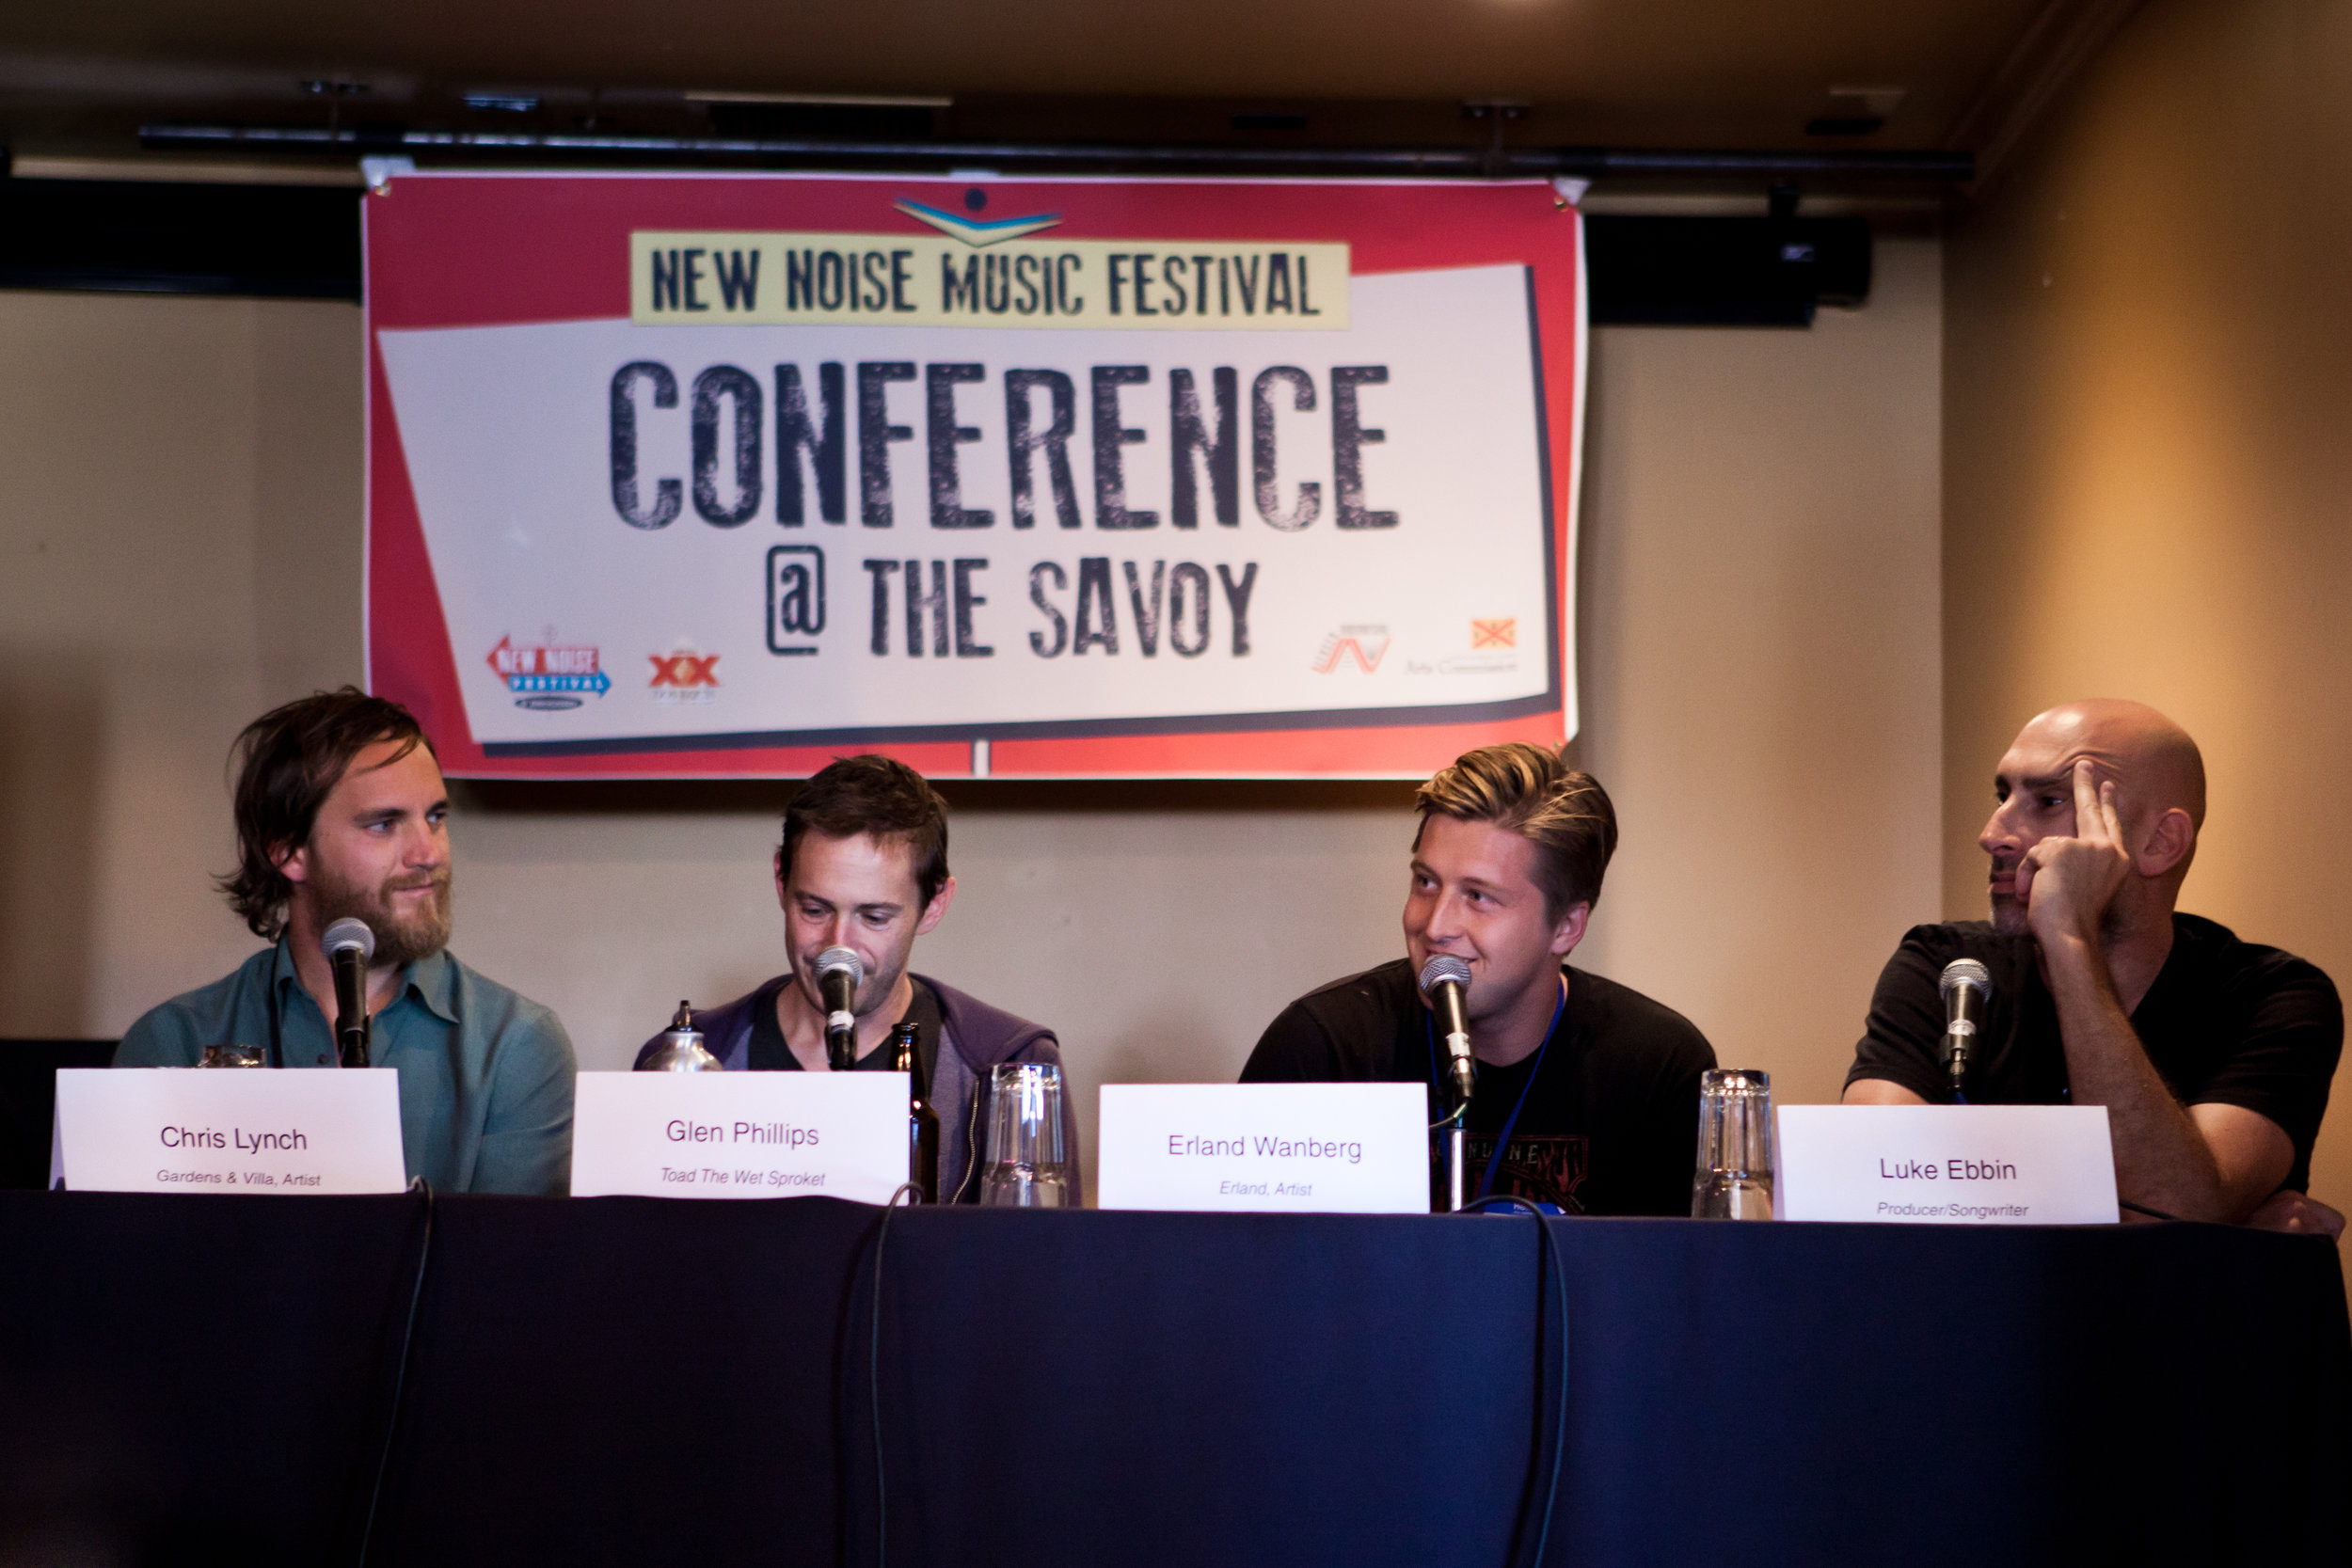 Erland as a guest speaker at the  New Noise  Music Festival conference.